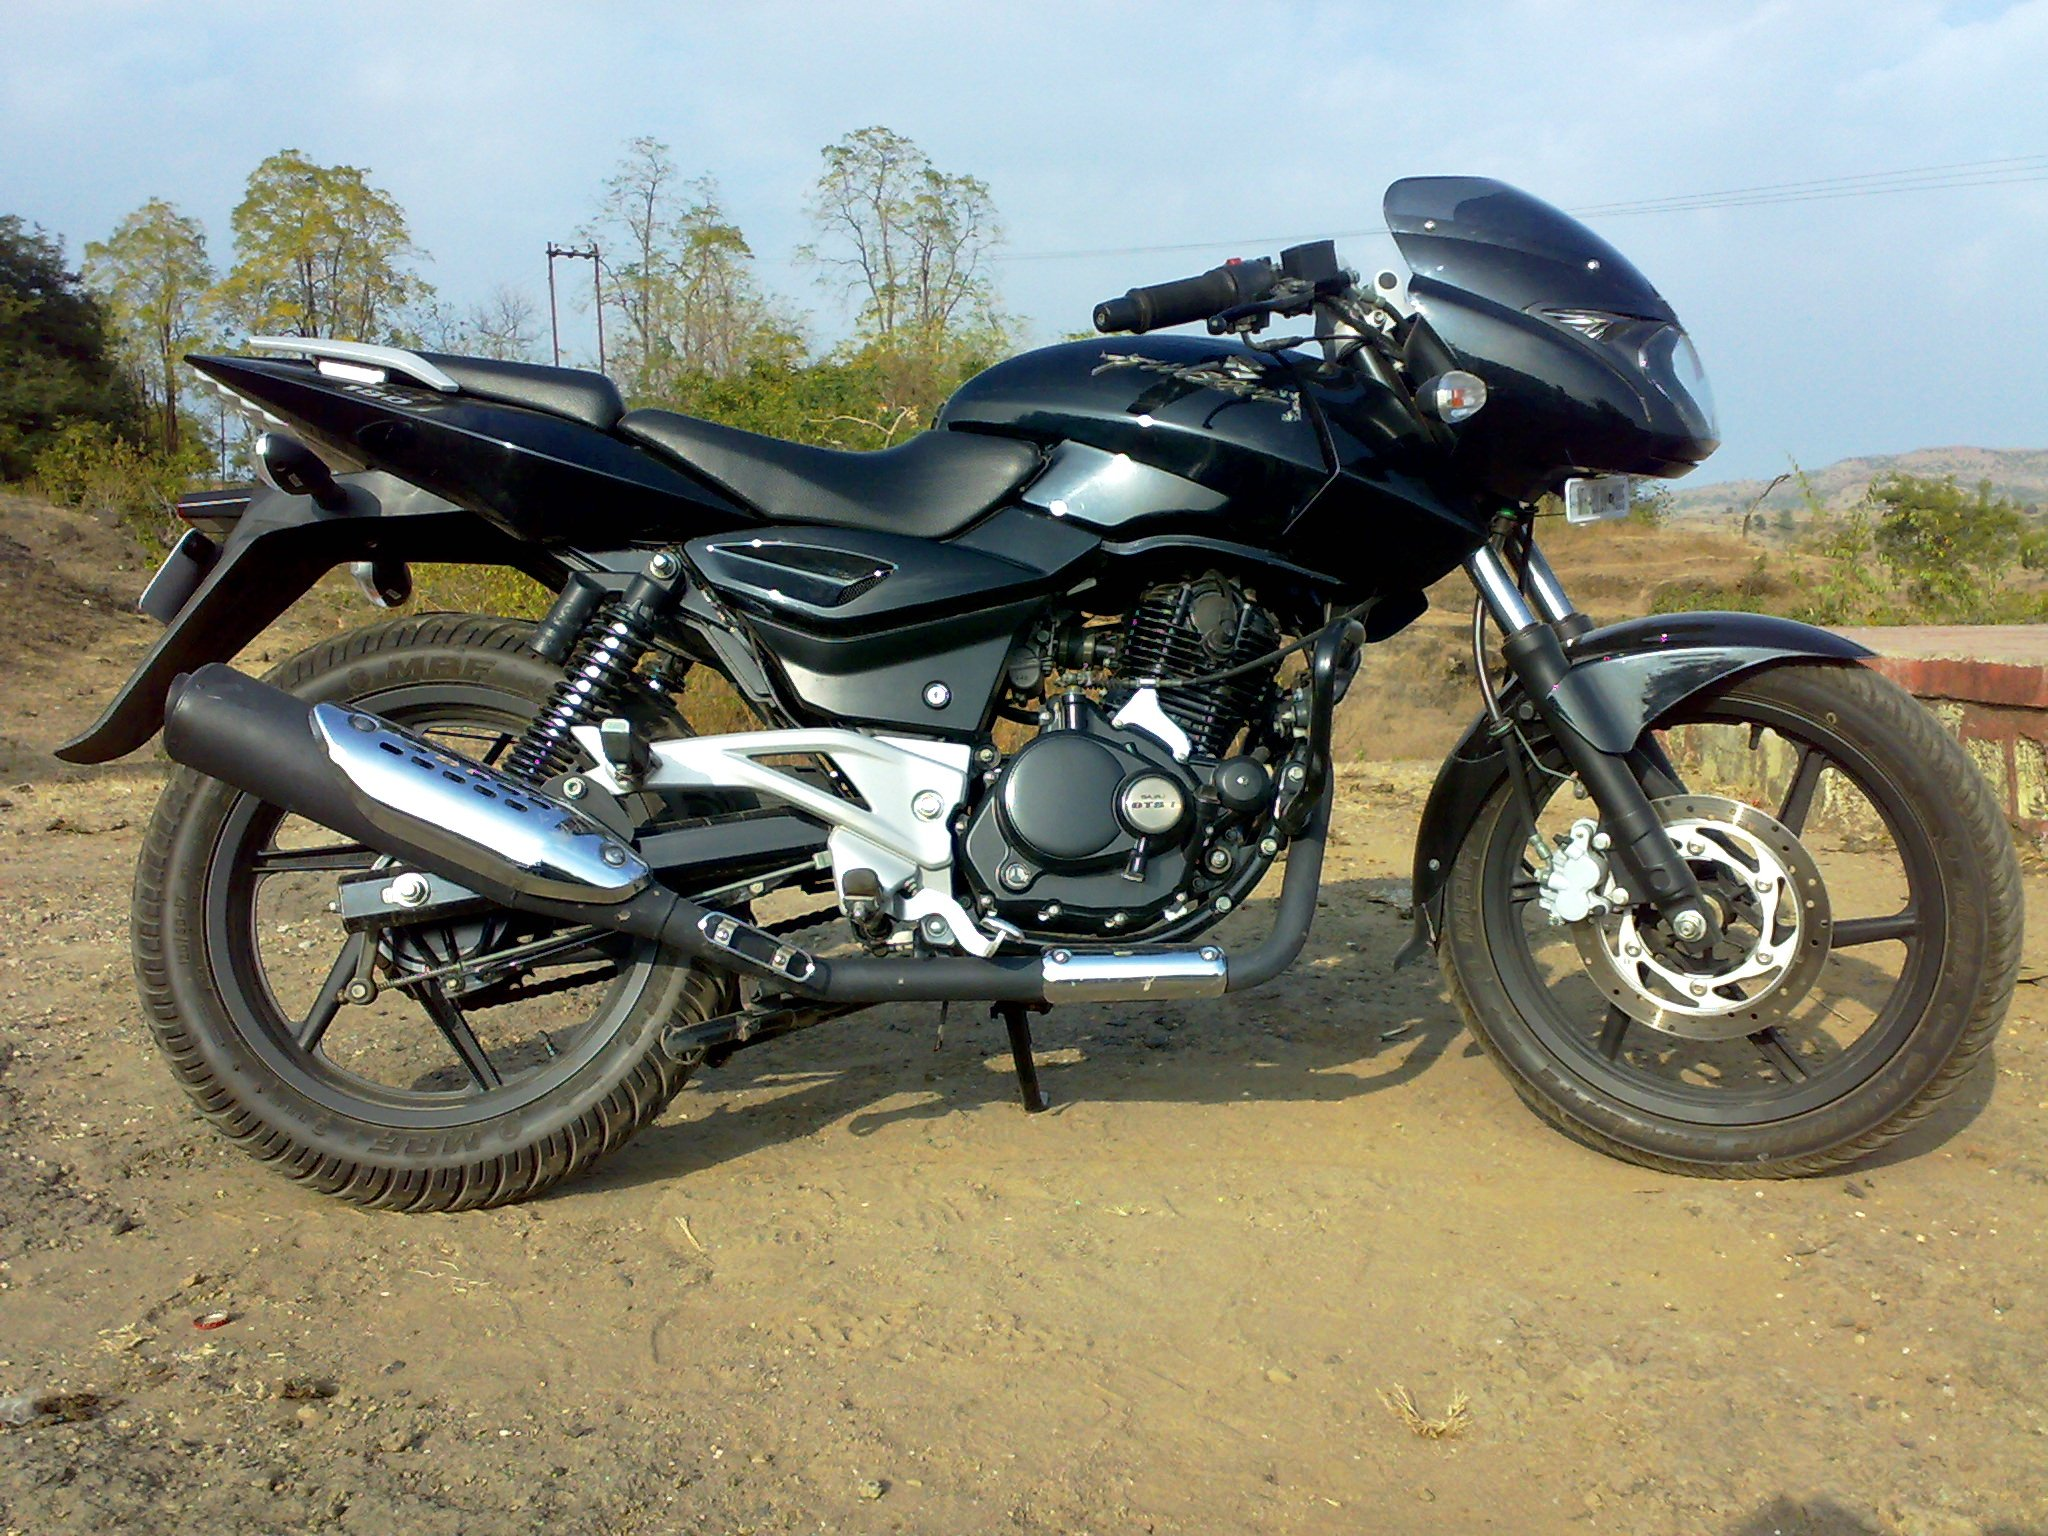 Pulsar 220 Black Hd Wallpapers Buingoctan